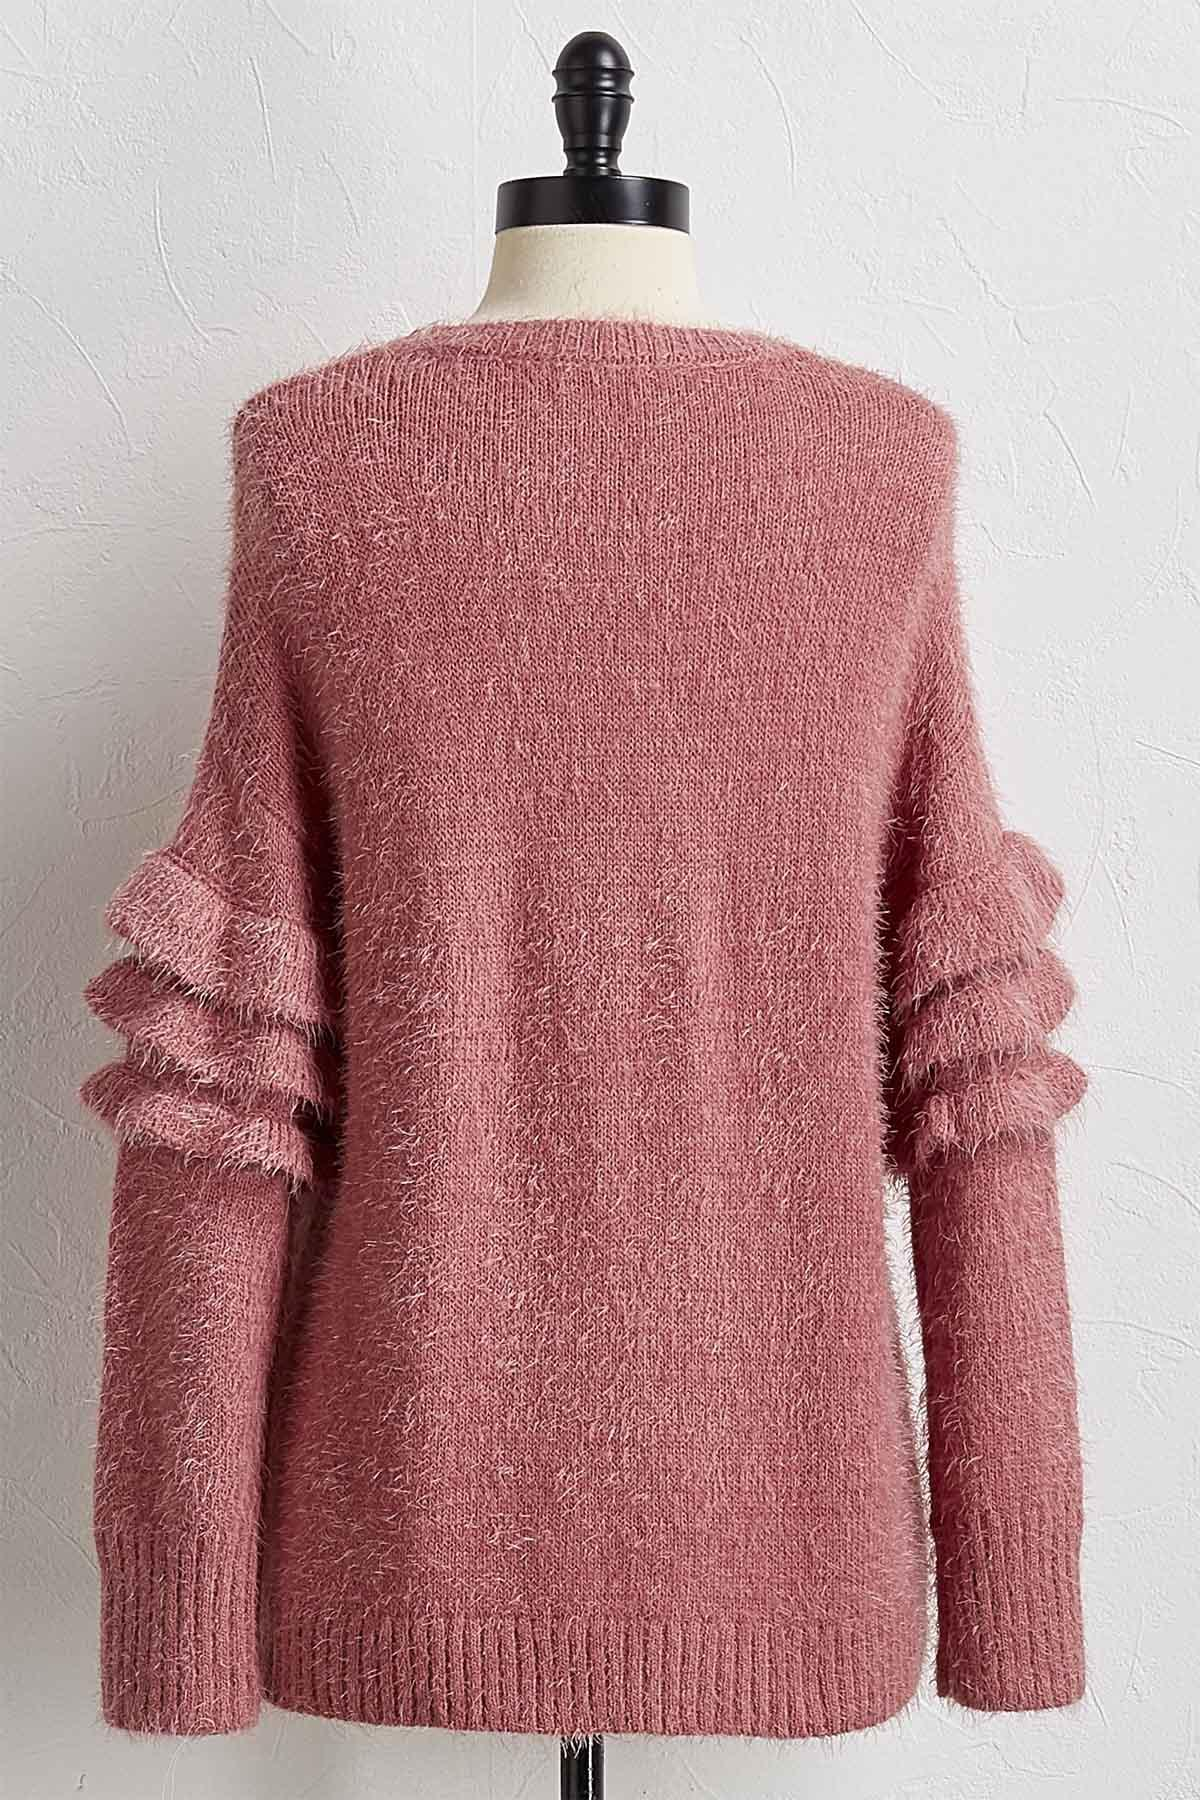 Ruffled Sleeve Eyelash Sweater